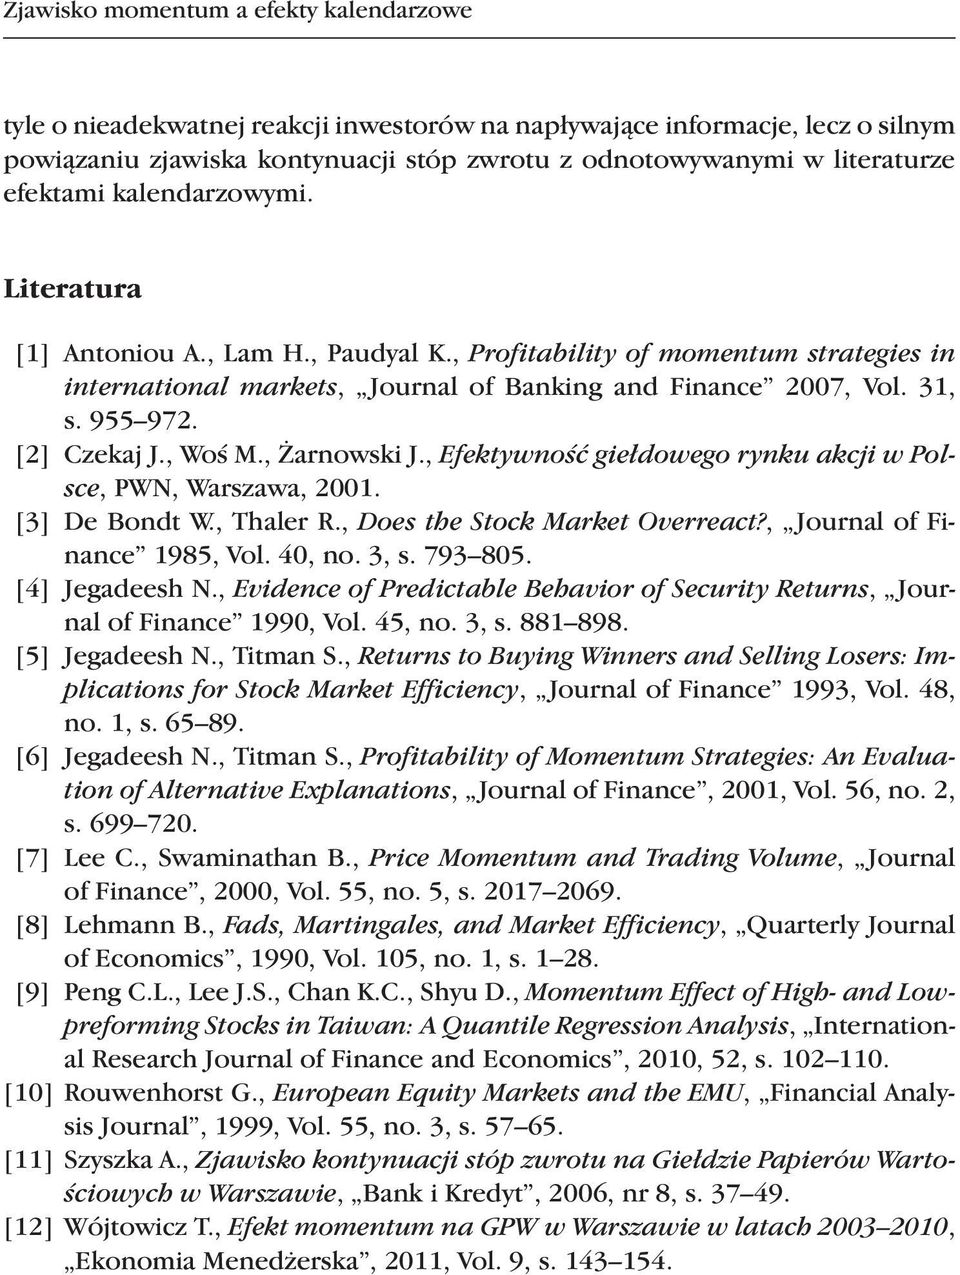 [2] Czekaj J., Woś M., Żarnowski J., Efektywność giełdowego rynku akcji w Polsce, PWN, Warszawa, 2001. [3] De Bondt W., Thaler R., Does the Stock Market Overreact?, Journal of Finance 1985, Vol.